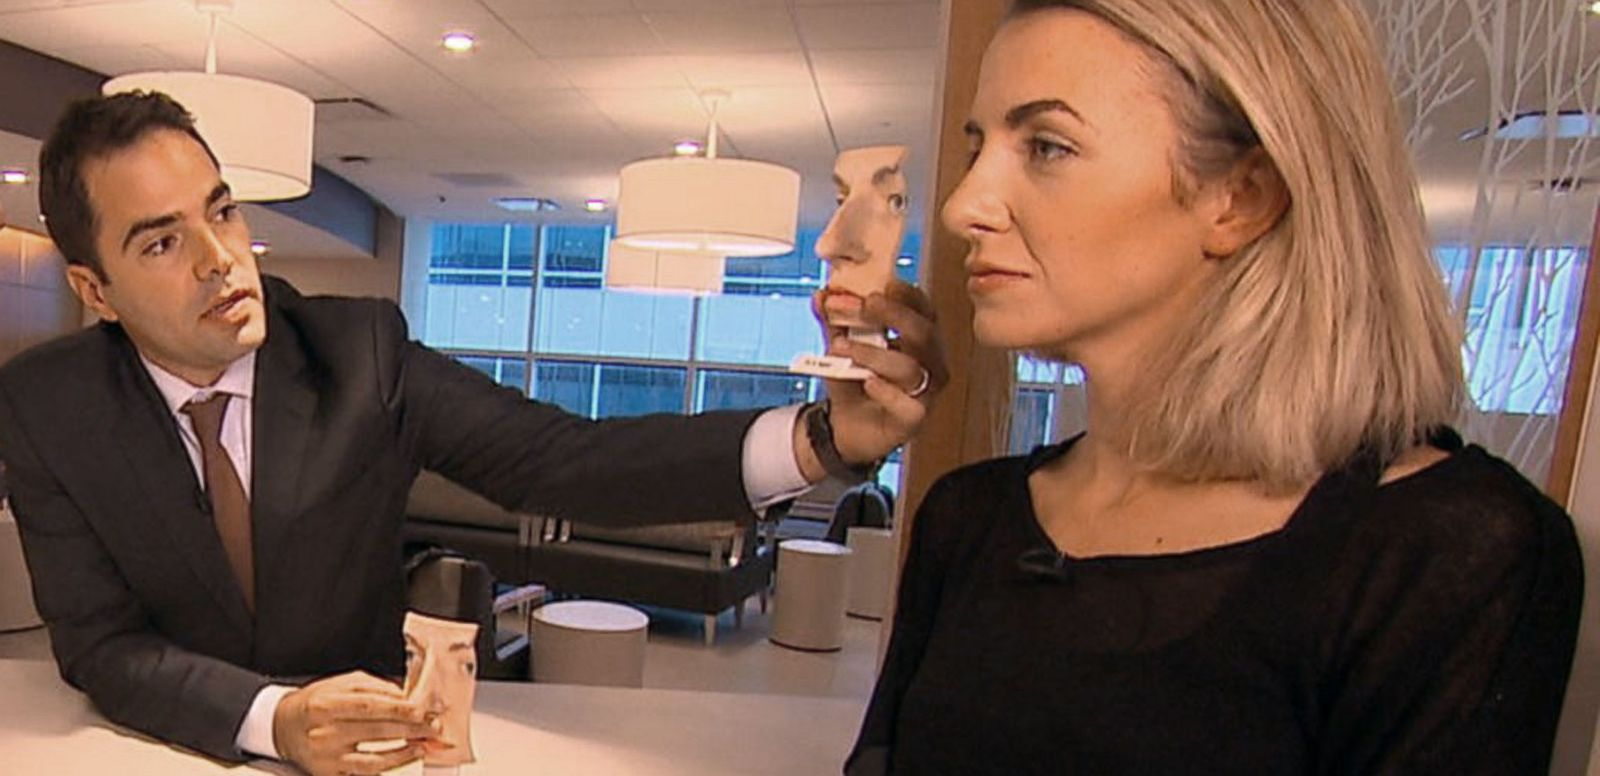 VIDEO: Fixing Facial Flaws With New Technology